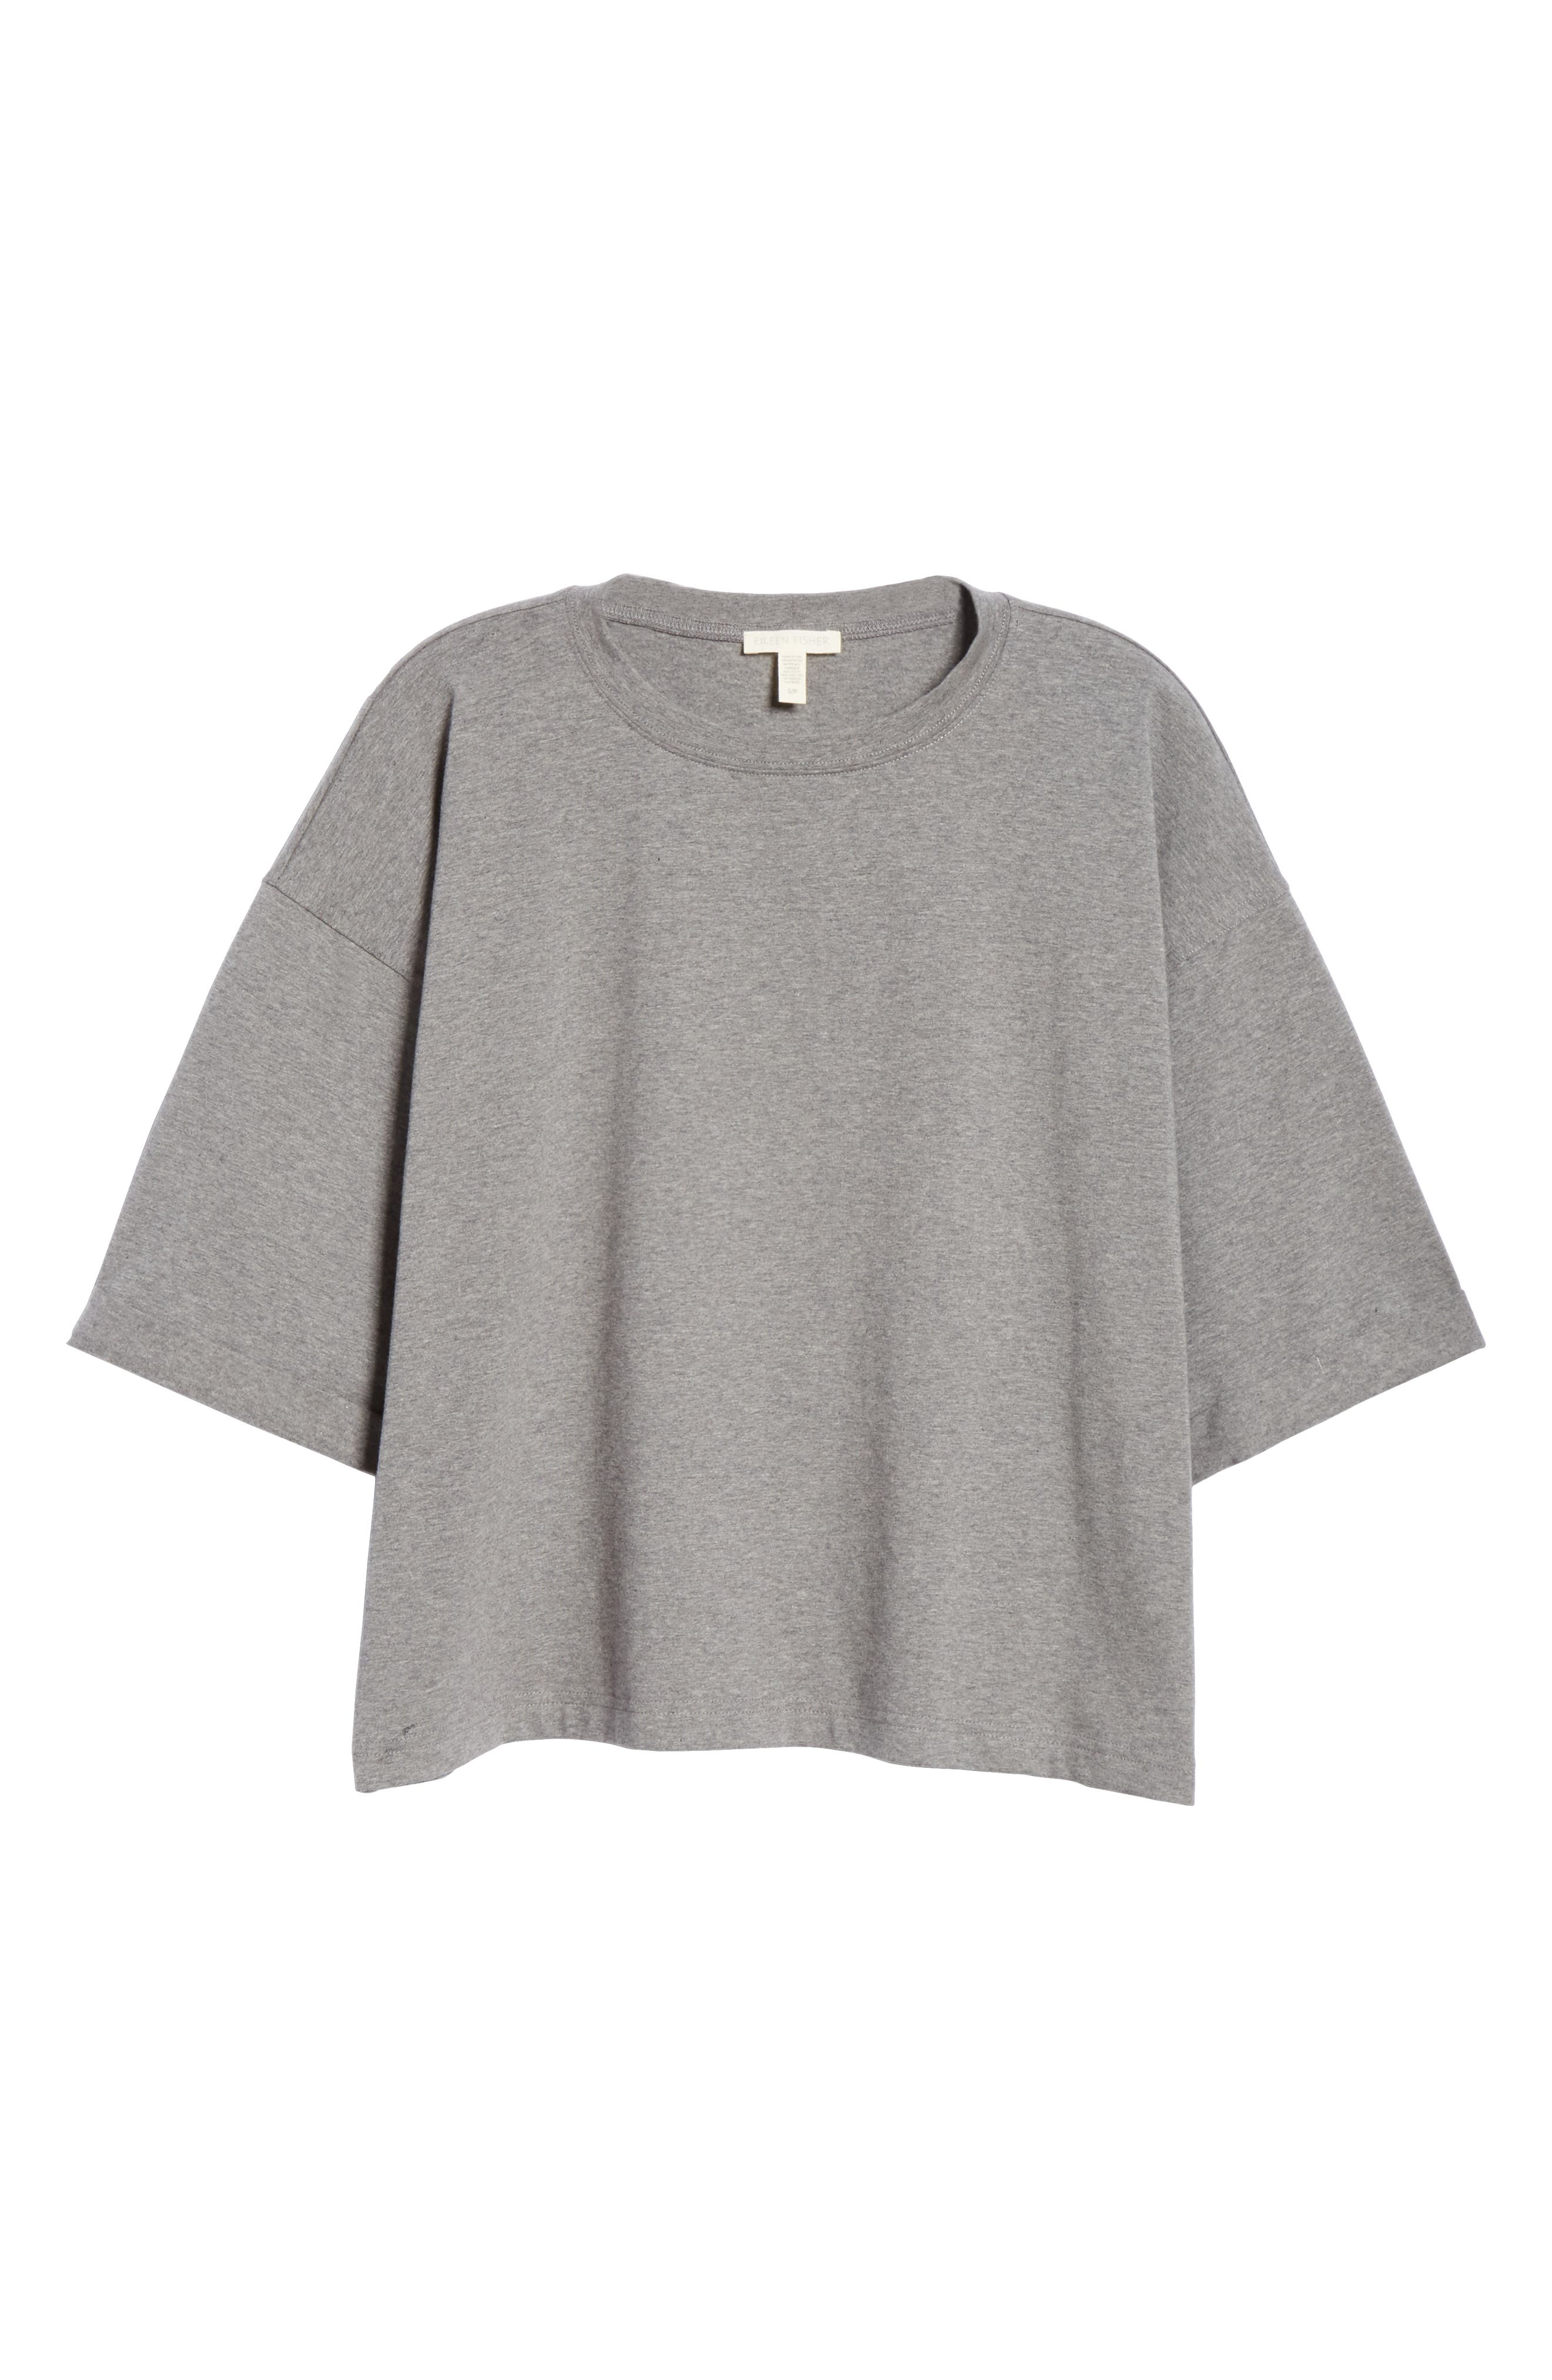 EILEEN FISHER, Stretch Organic Cotton Top, Alternate thumbnail 6, color, MOON